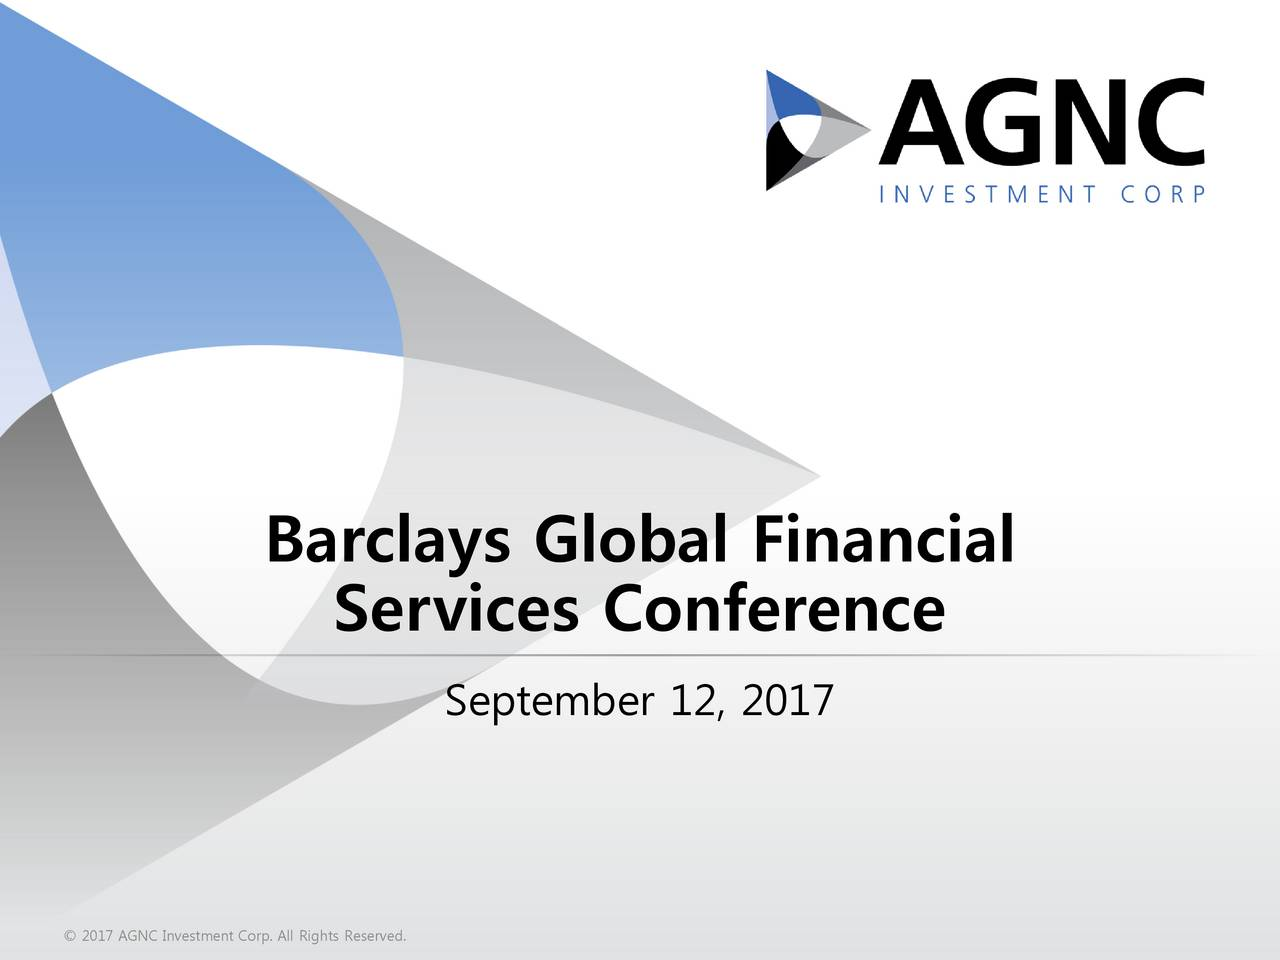 global financial corp The financial services regulatory environment has changed, and grown more complex, over the past decade in the wake of the global financial crisis that started in 2008.